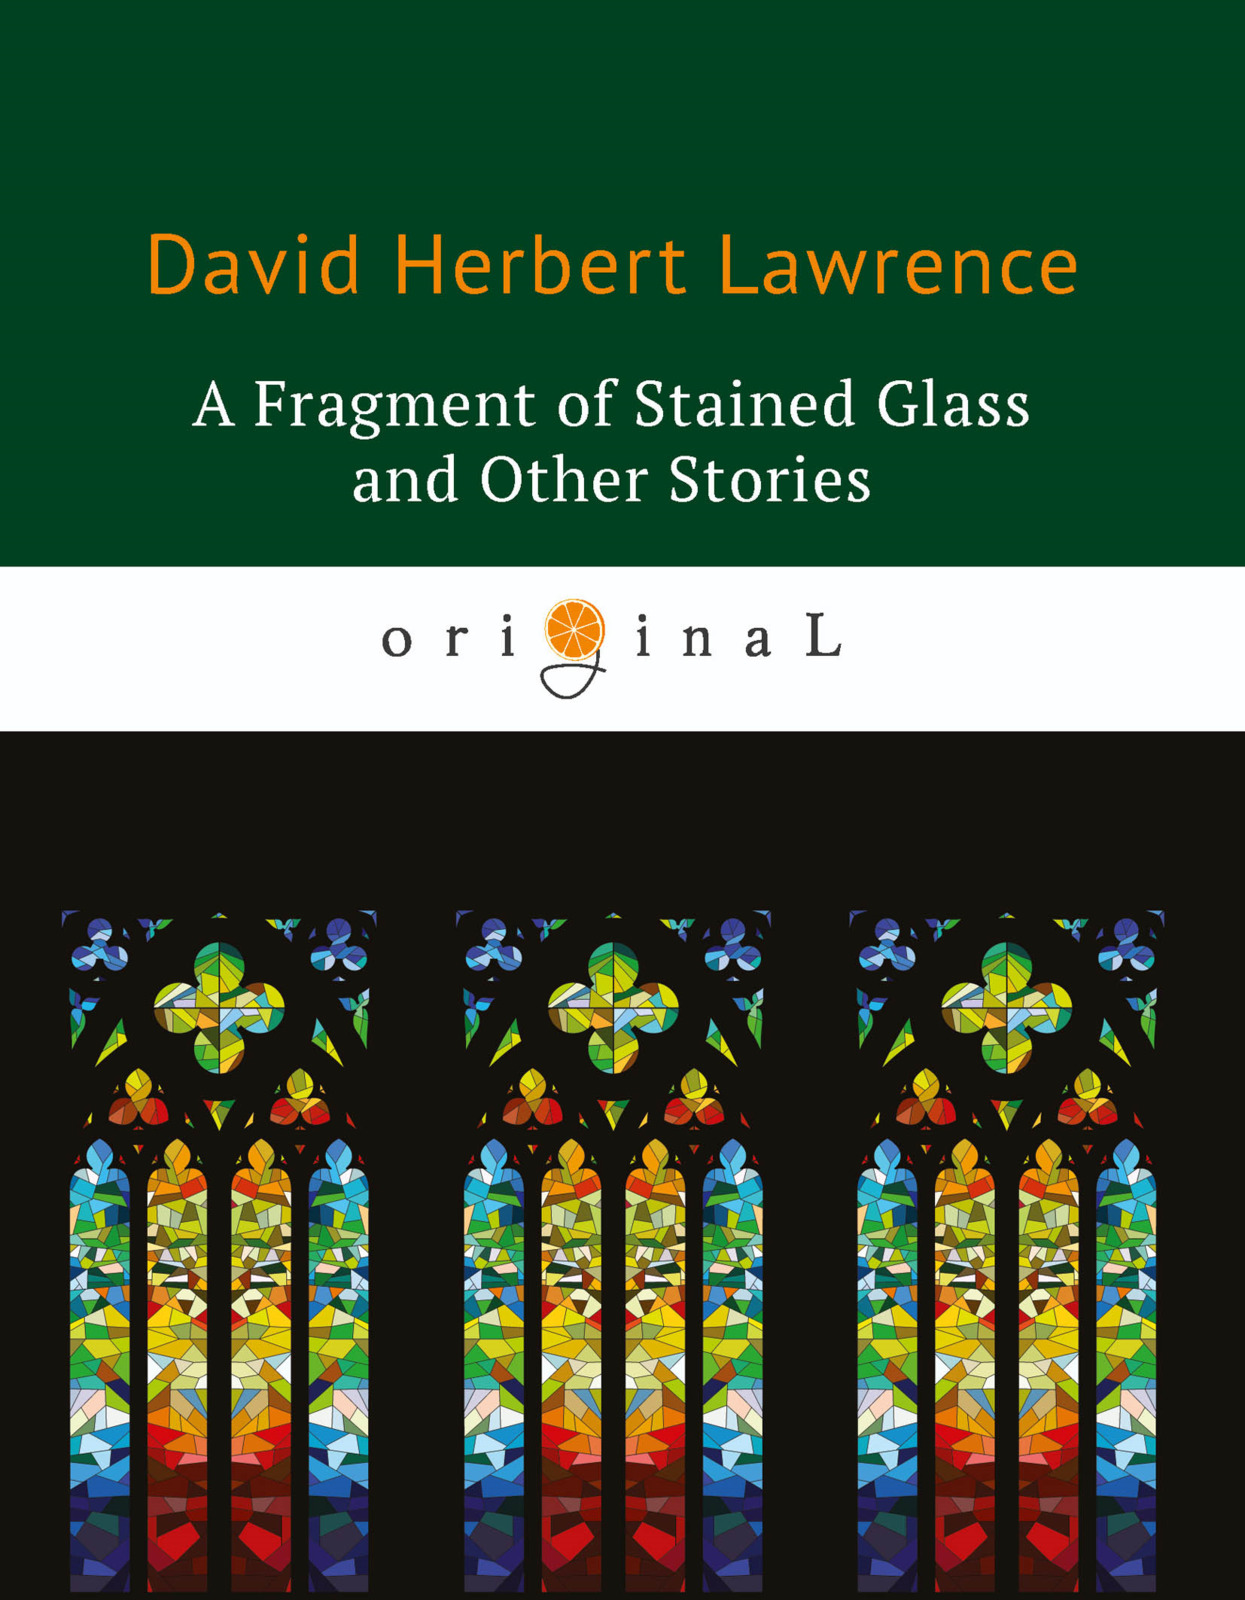 D. H. Lawrence A Fragment of Stained Glass and Other Stories just like other daughters